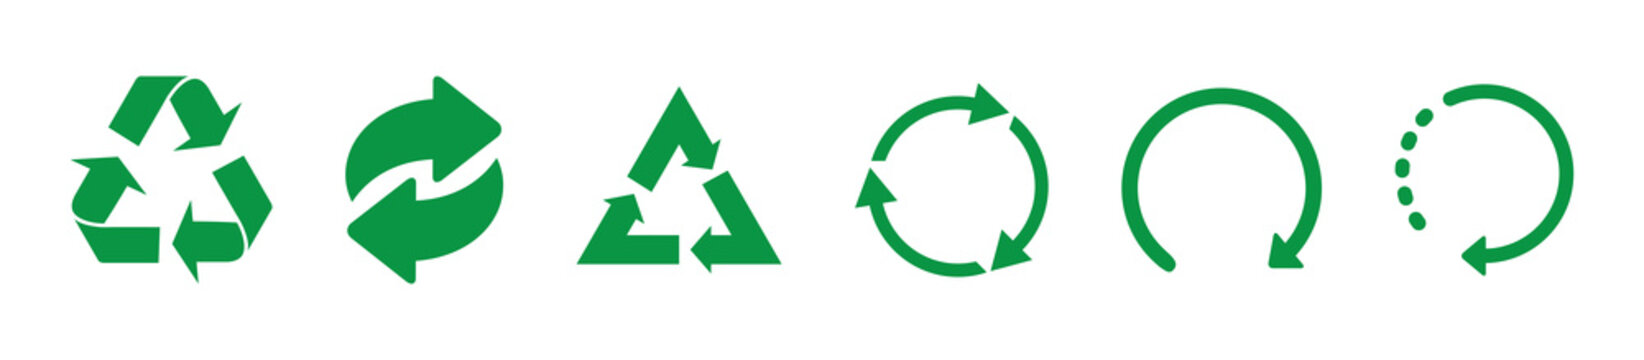 Recycle green vector icons. Recycle icons isolated on white background